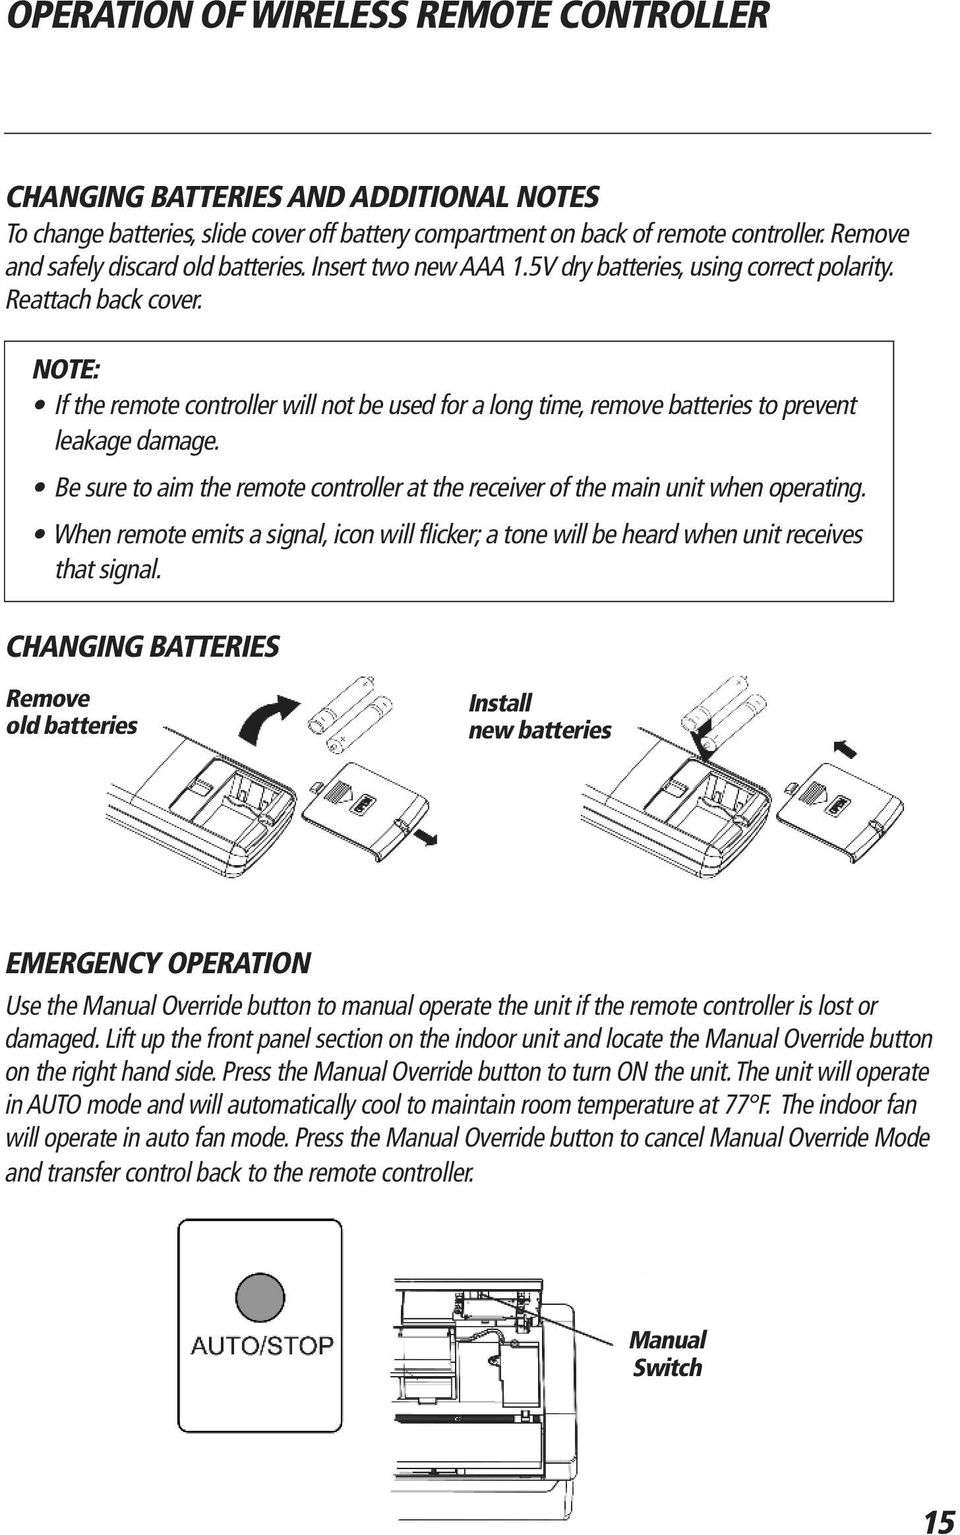 NOTE: If the remote controller will not be used for a long time, remove batteries to prevent leakage damage. Be sure to aim the remote controller at the receiver of the main unit when operating.